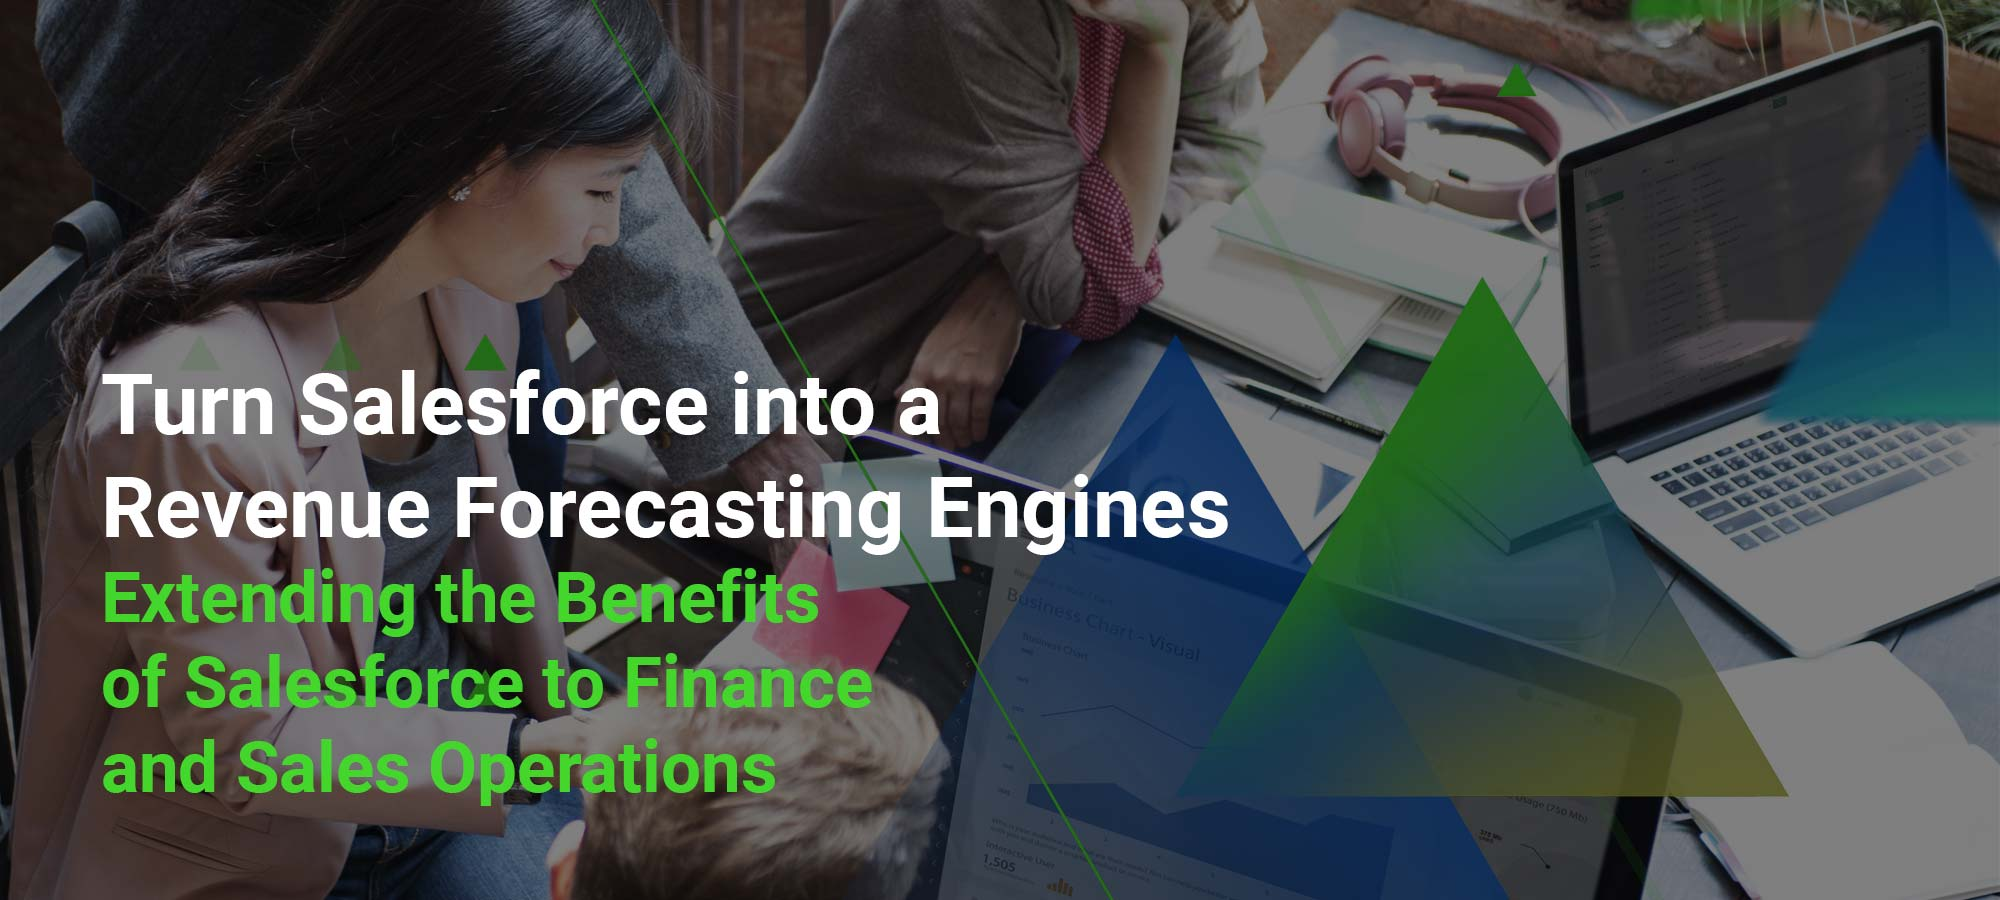 Turn Salesforce into a Revenue Forecasting Engine